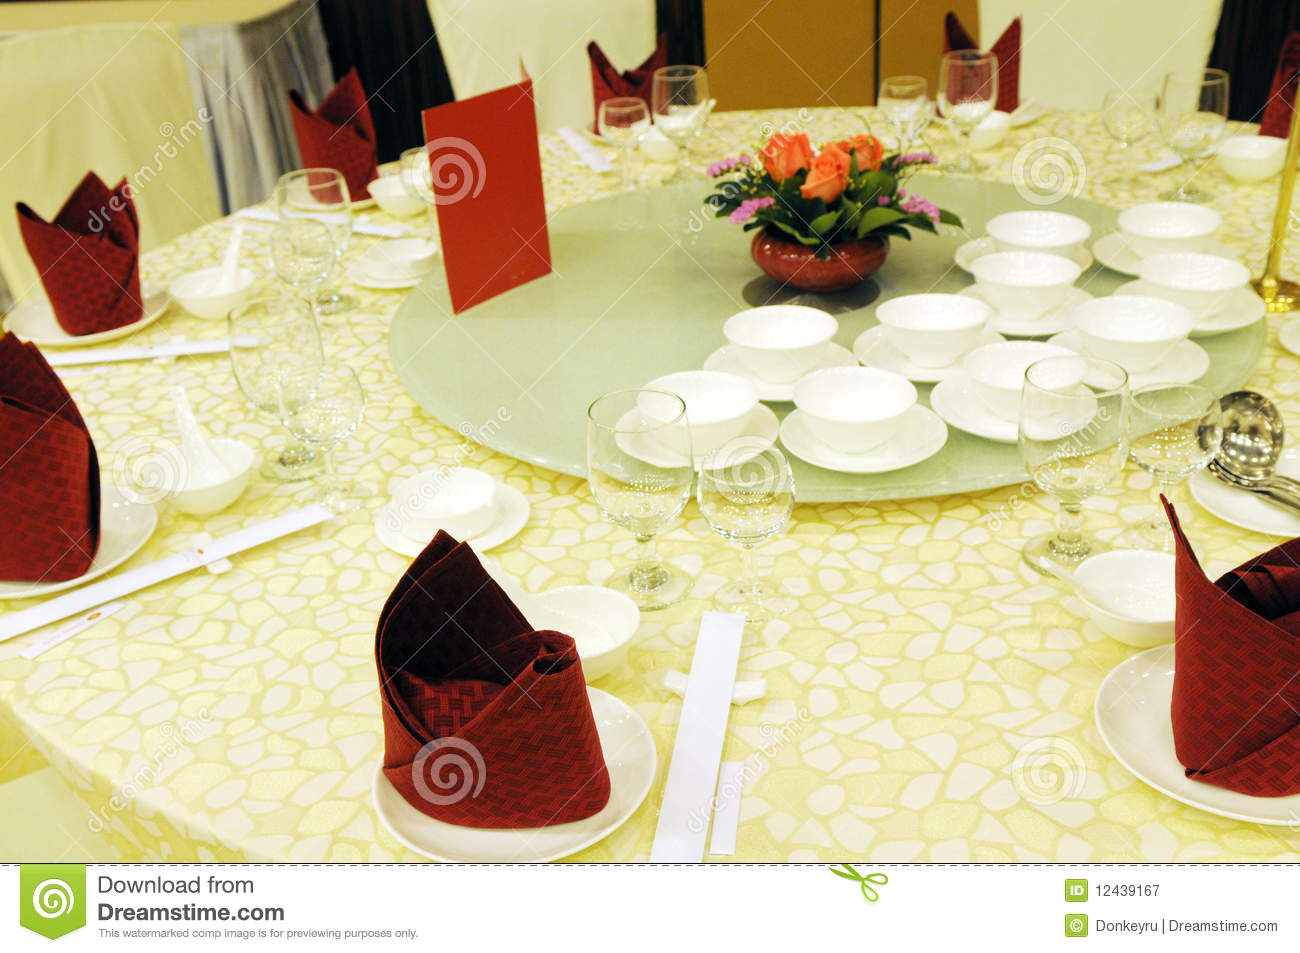 Chinese table setting. Table setting in a luxury restaurant Royalty Free Stock Photography & Chinese Table Setting Stock Photos - 2391 Images